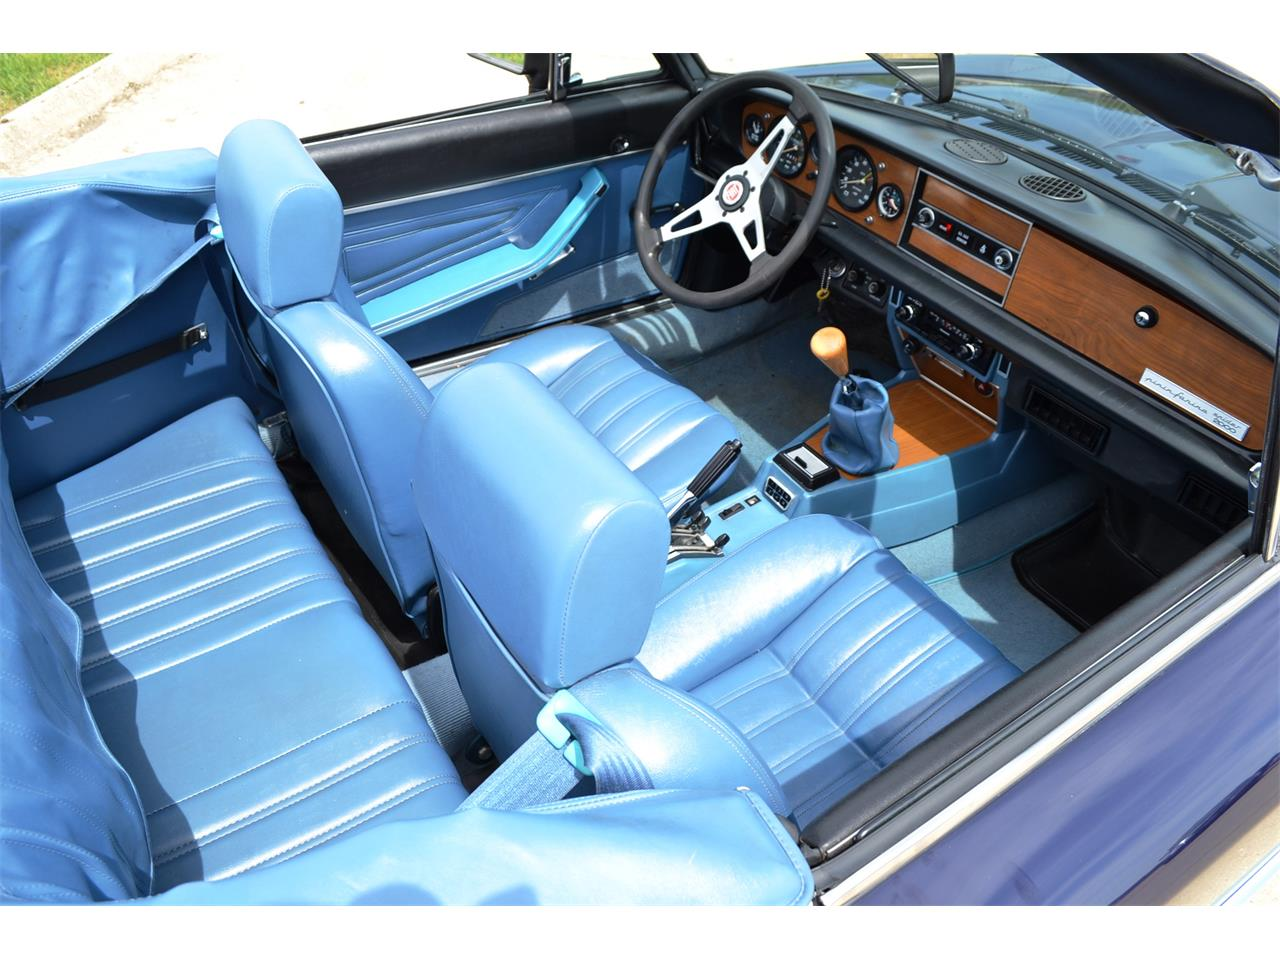 1981 Fiat Spider for sale in Barrington, IL – photo 27